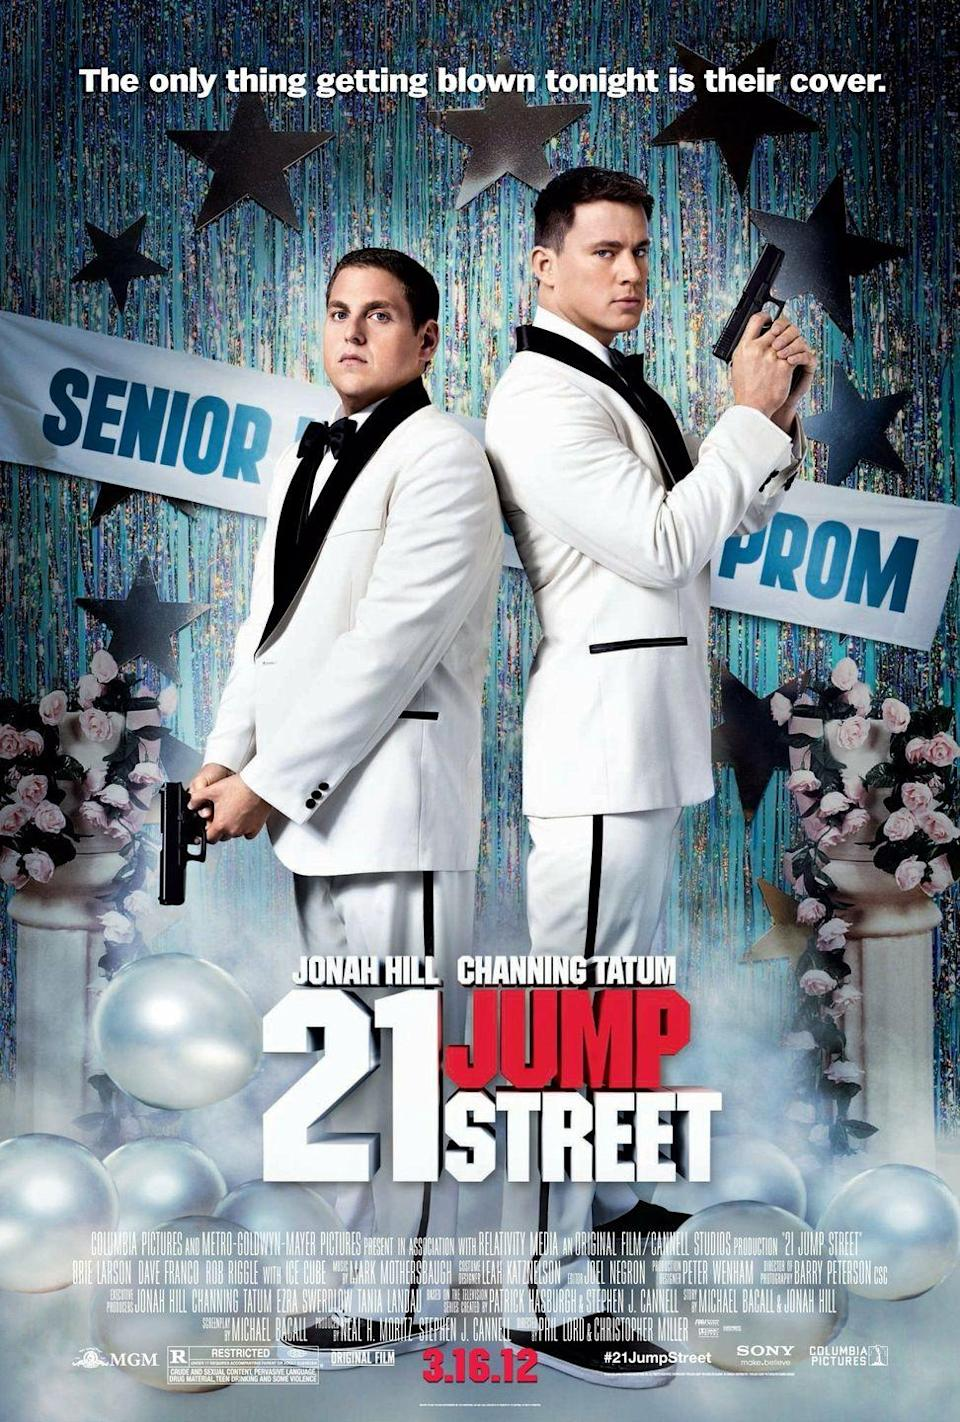 """<p><a class=""""link rapid-noclick-resp"""" href=""""https://www.amazon.com/21-Jump-Street-Jonah-Hill/dp/B0081L37Z0?tag=syn-yahoo-20&ascsubtag=%5Bartid%7C10070.g.37101104%5Bsrc%7Cyahoo-us"""" rel=""""nofollow noopener"""" target=""""_blank"""" data-ylk=""""slk:STREAM NOW""""><strong>STREAM NOW</strong></a></p><p>When two youthful-looking cops go undercover as high school students at their former school, they're faced with familiar challenges and anxiety-inducing situations that they endured during adolescence. Jonah Hill and Channing Tatum star in this film based on the popular '80s TV series of the same title.</p>"""